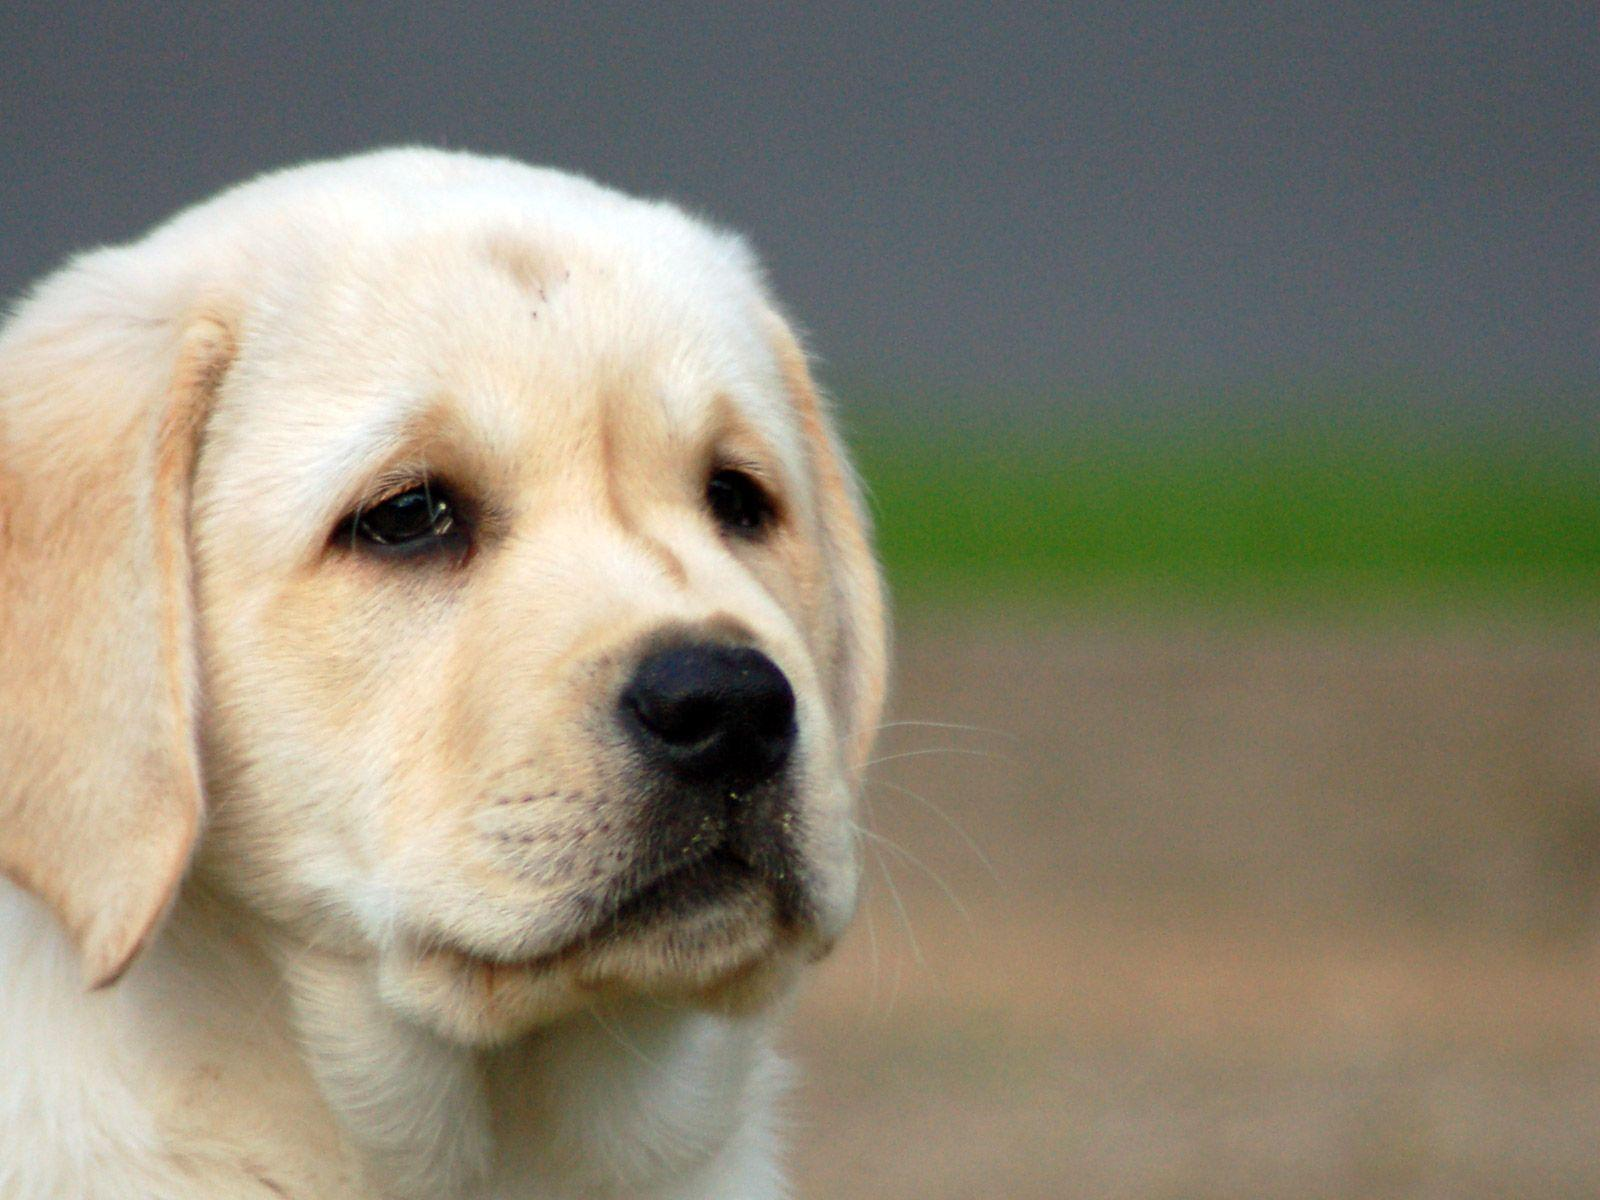 Cute dog looks so sad wallpapers